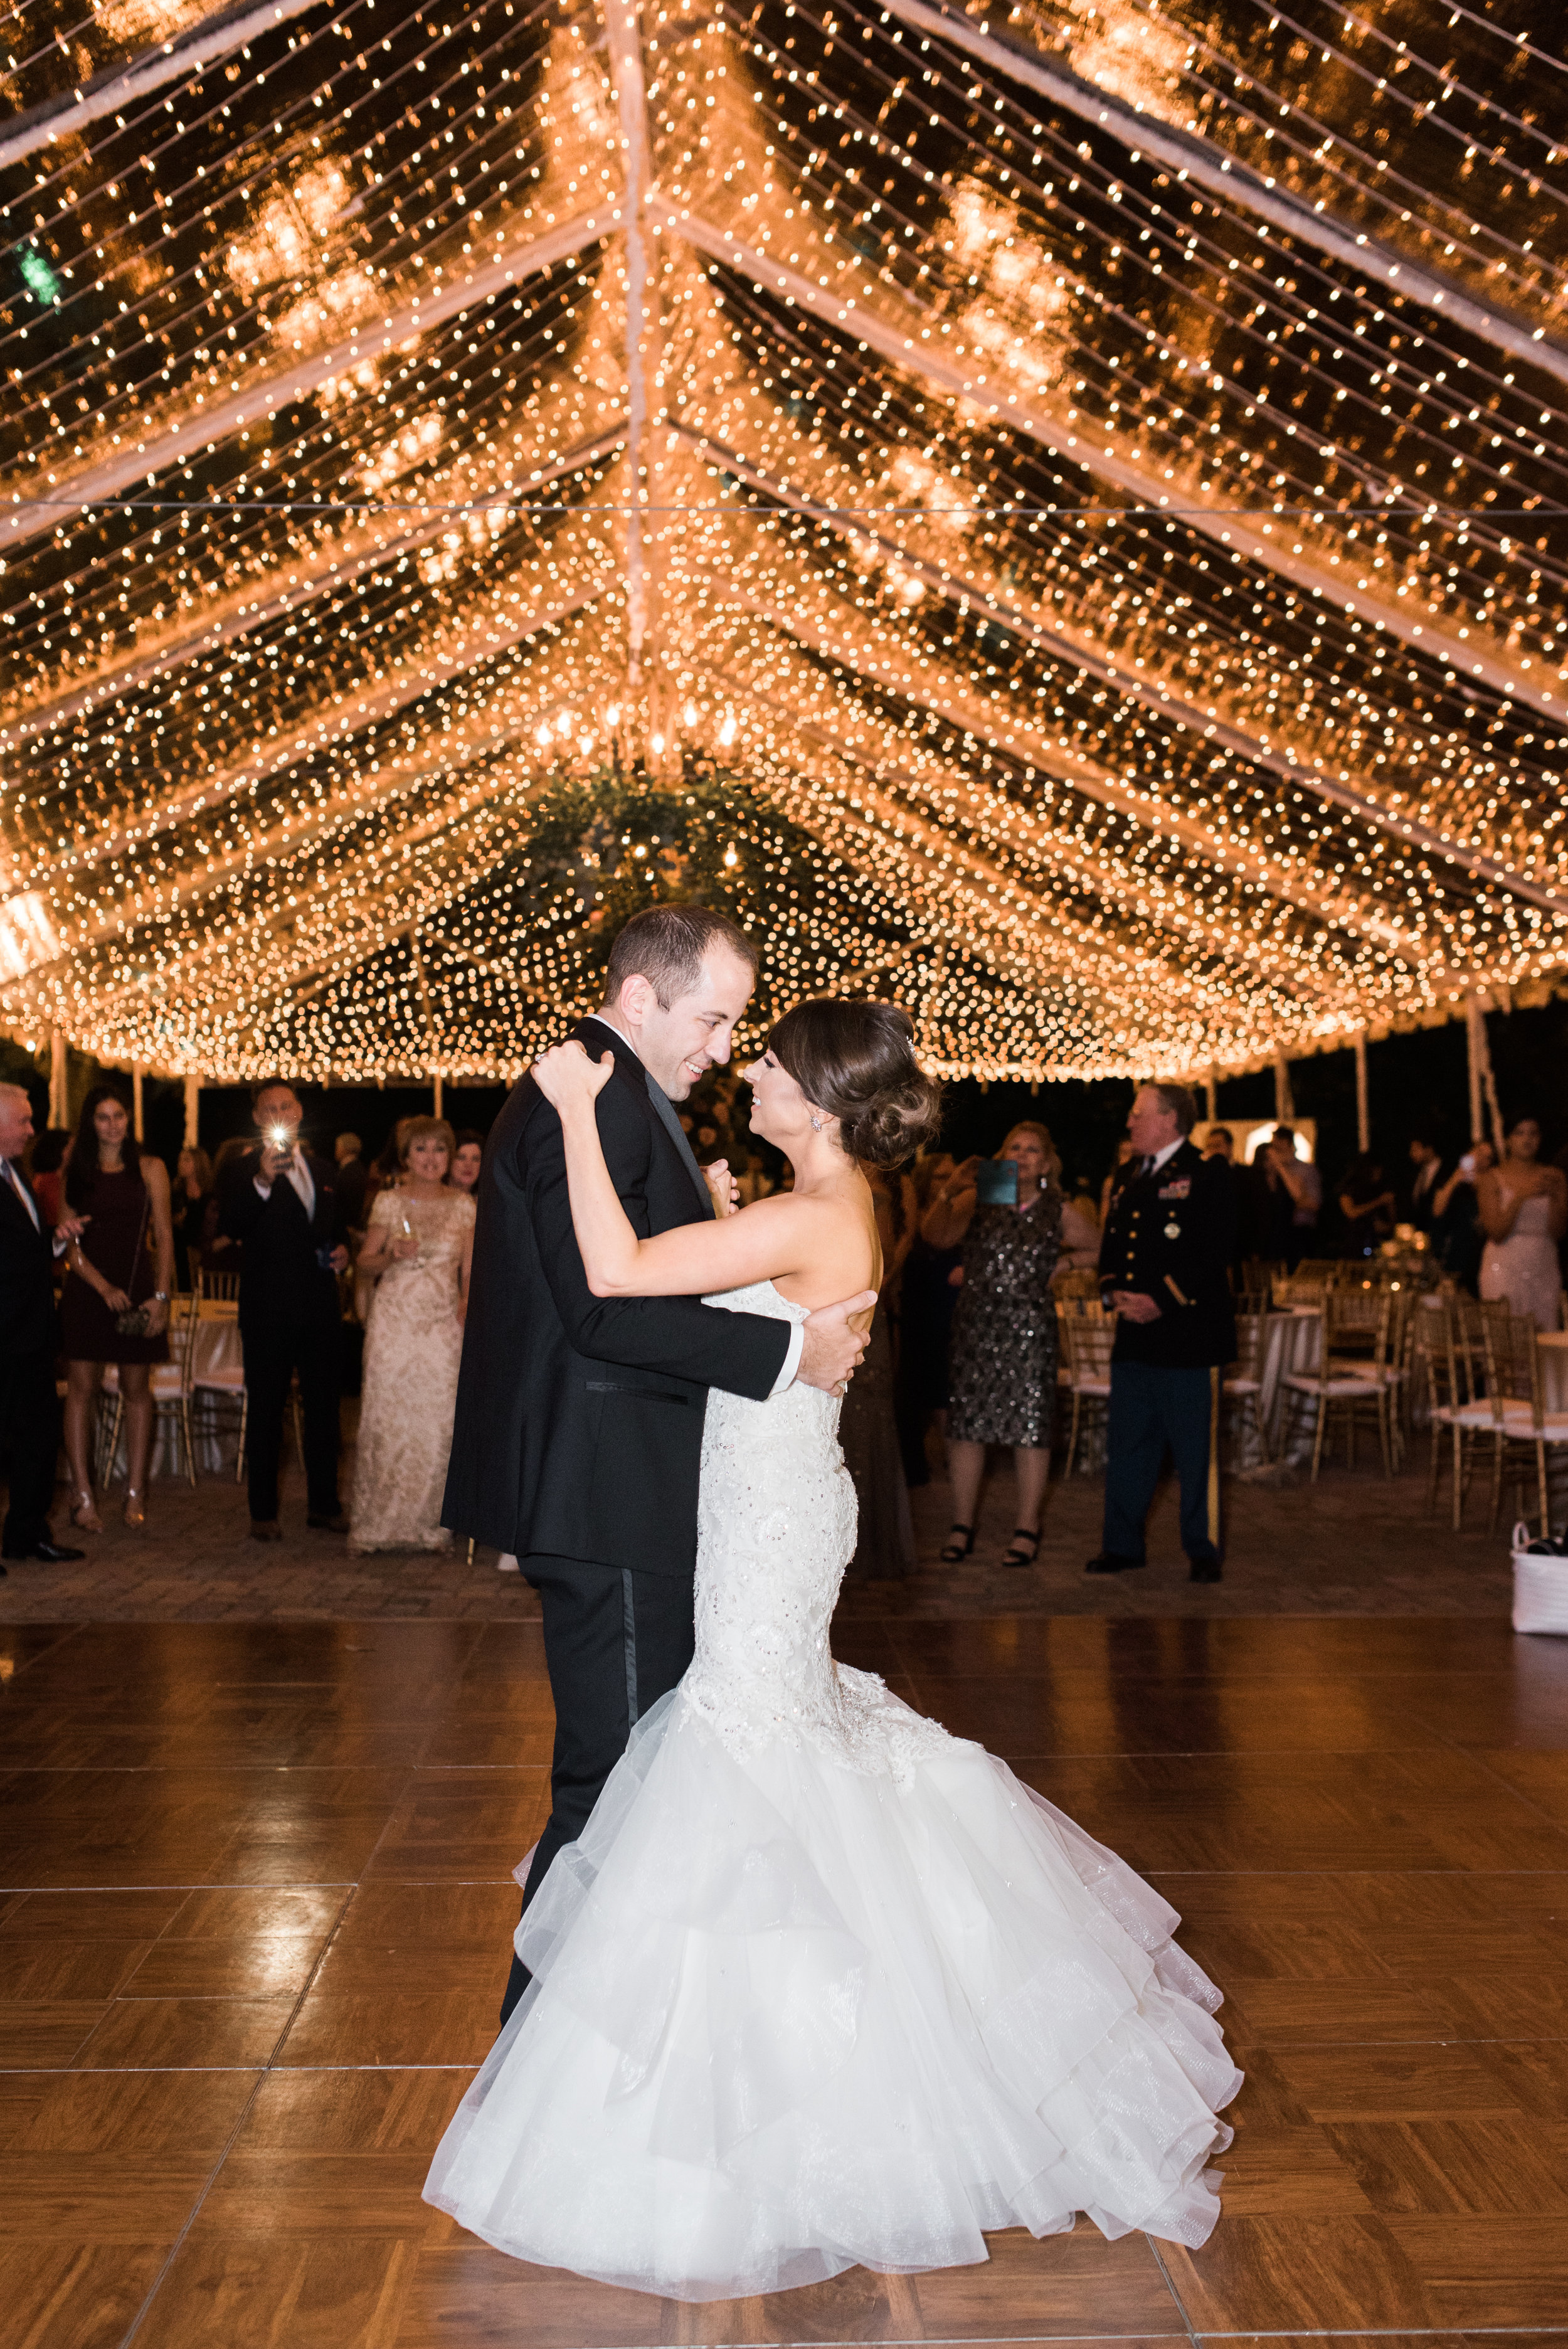 Southern Fete, Southern Wedding, Bride and Groom First Dance, Reception, Light Decor